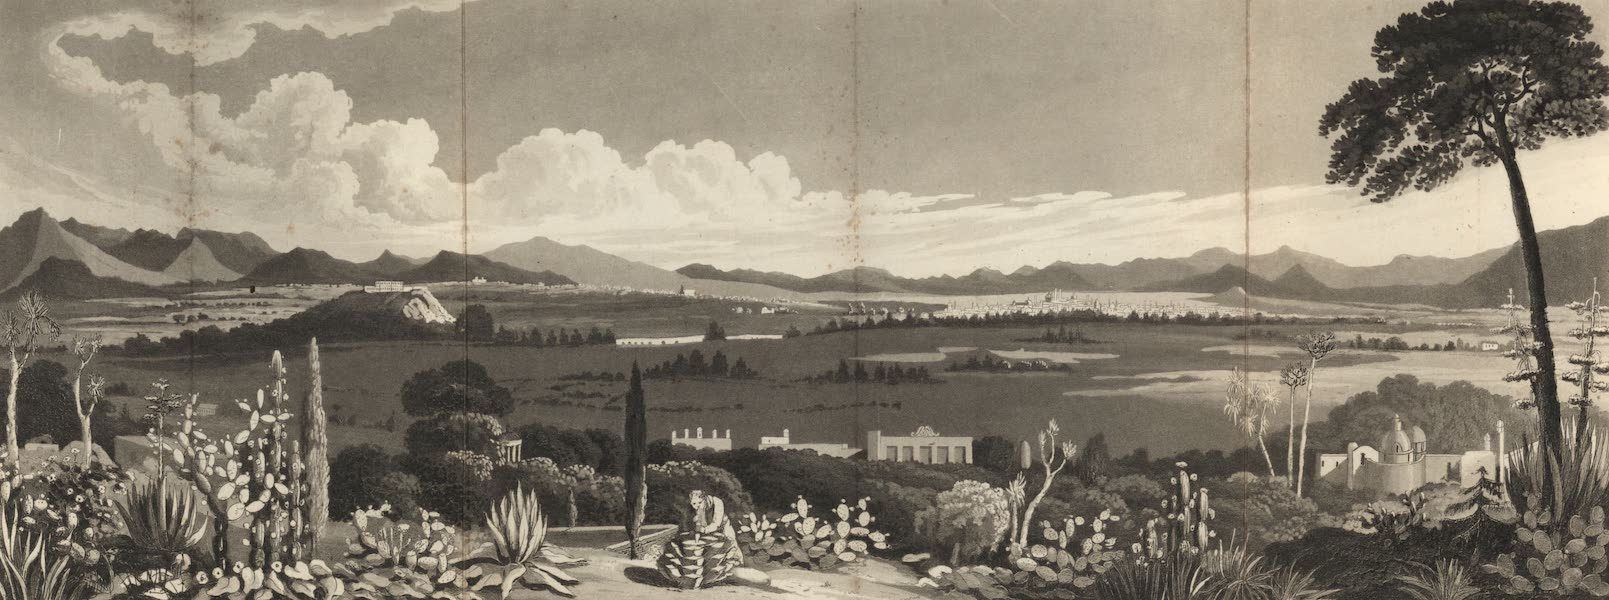 Six Months Residence and Travels in Mexico - View of the City and Valley of Mexico from Tacubaya (1824)